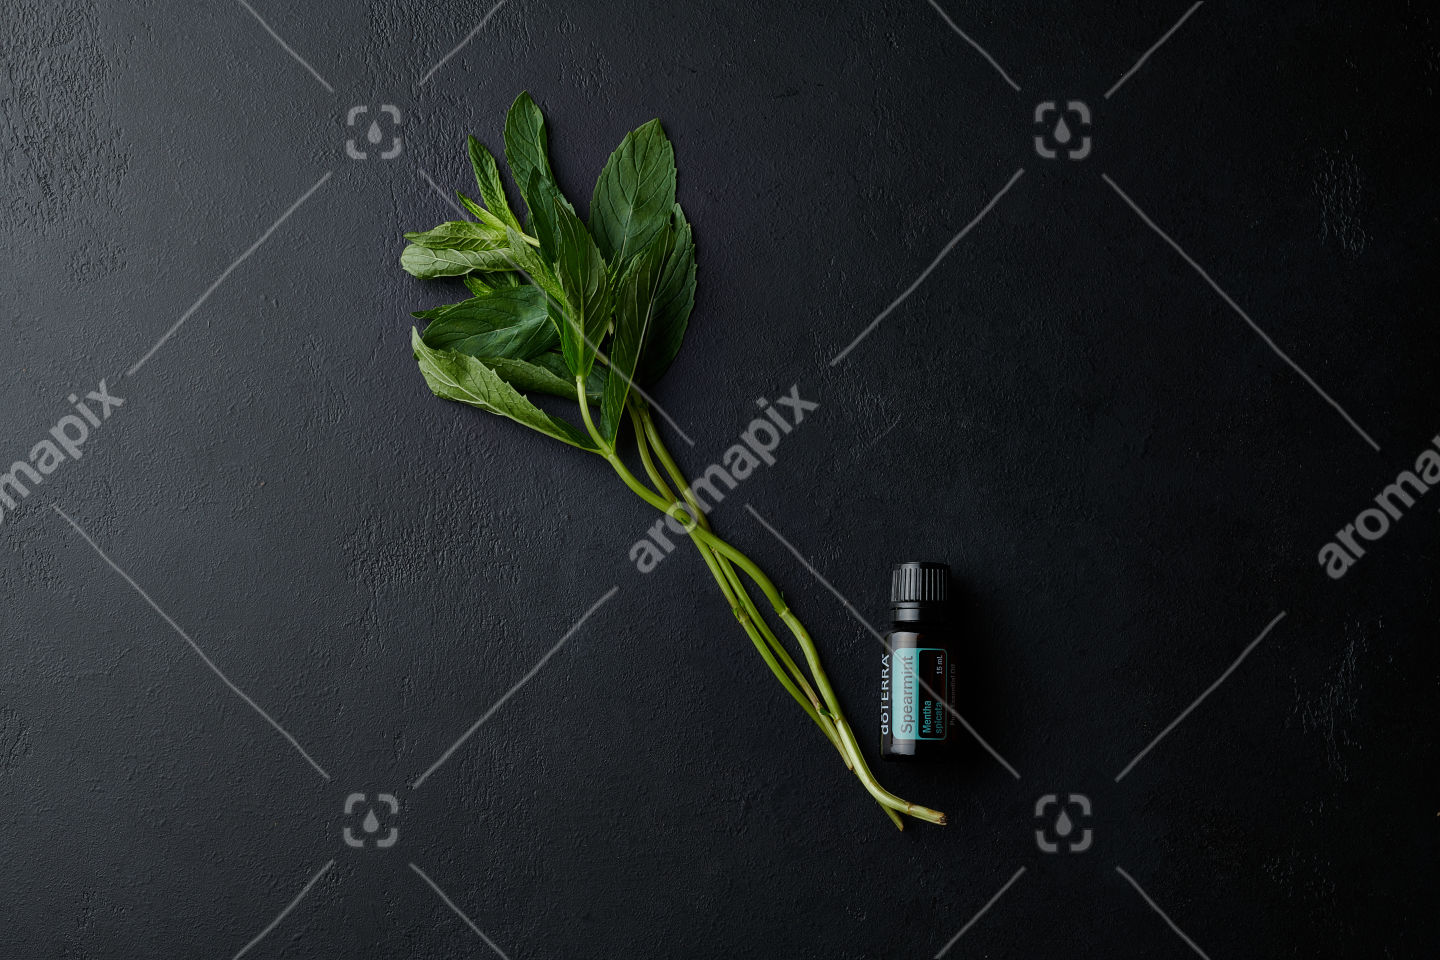 doTERRA Spearmint with a peppermint branch on black